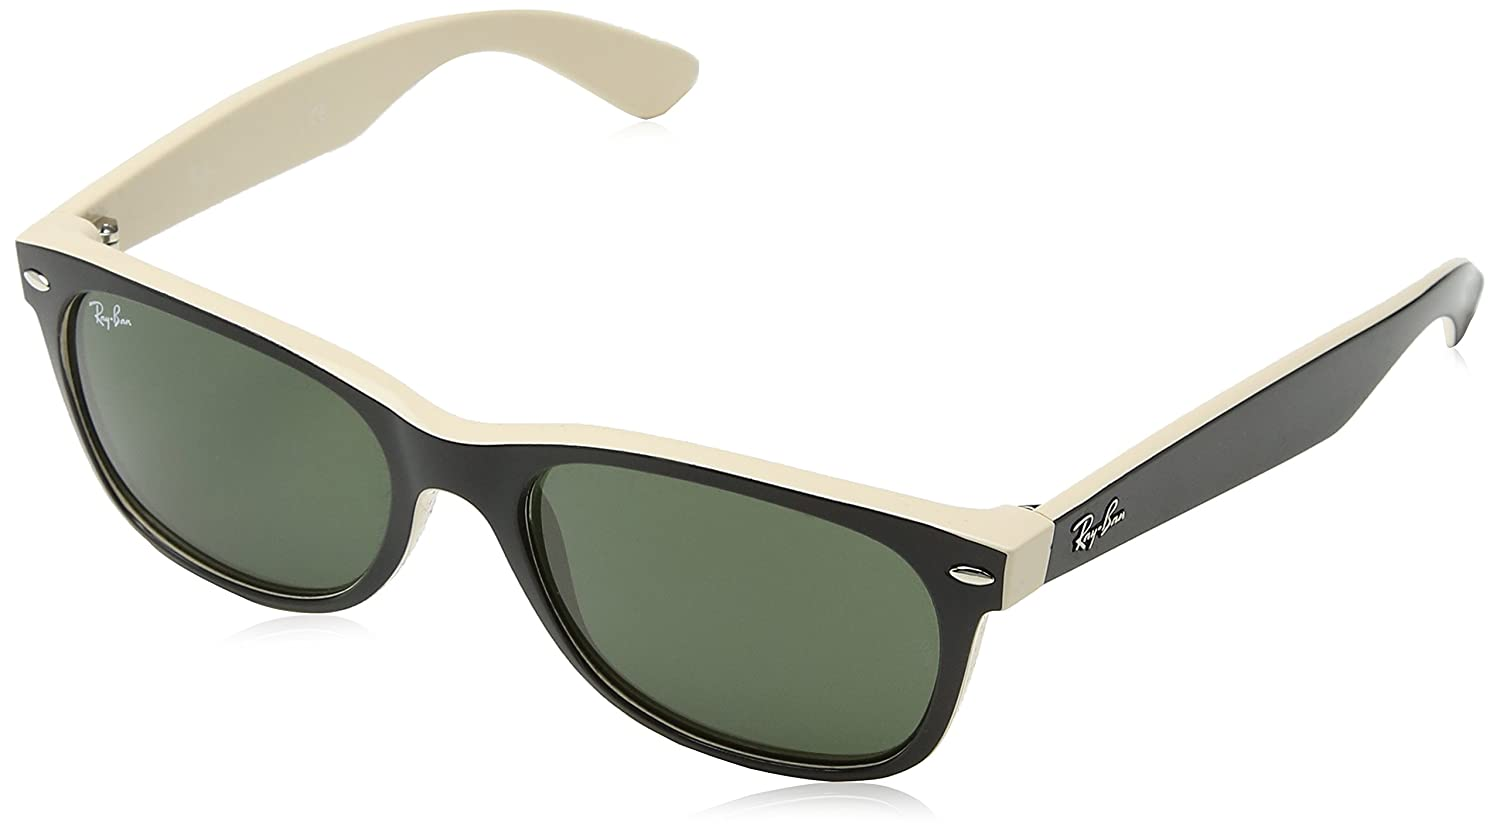 2ca81422701 Amazon.com  Ray-Ban New Wayfarer RB2132 Sunglasses-875 Black On  Beige Crystal Green-55mm  Ray-Ban  Clothing